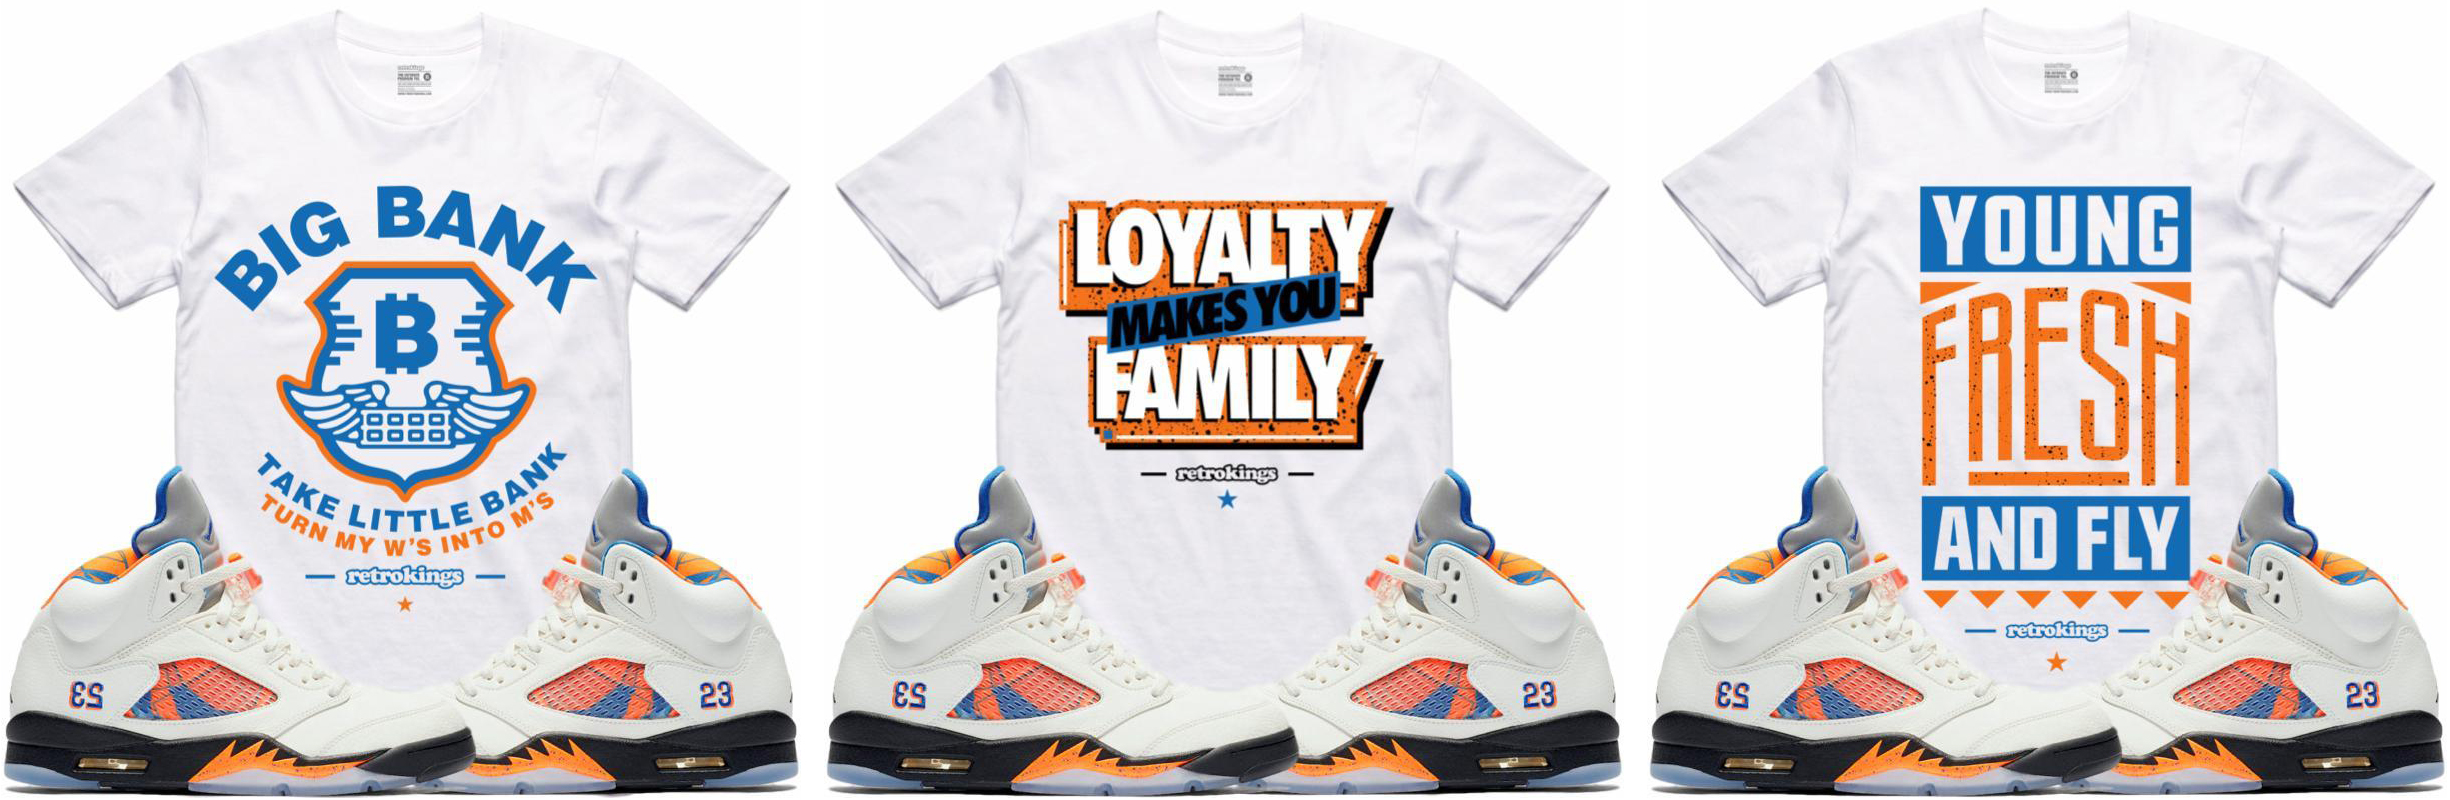 632e3ef354a7 Jordan 5 International Flight Sneaker Tees by Retro Kings ...